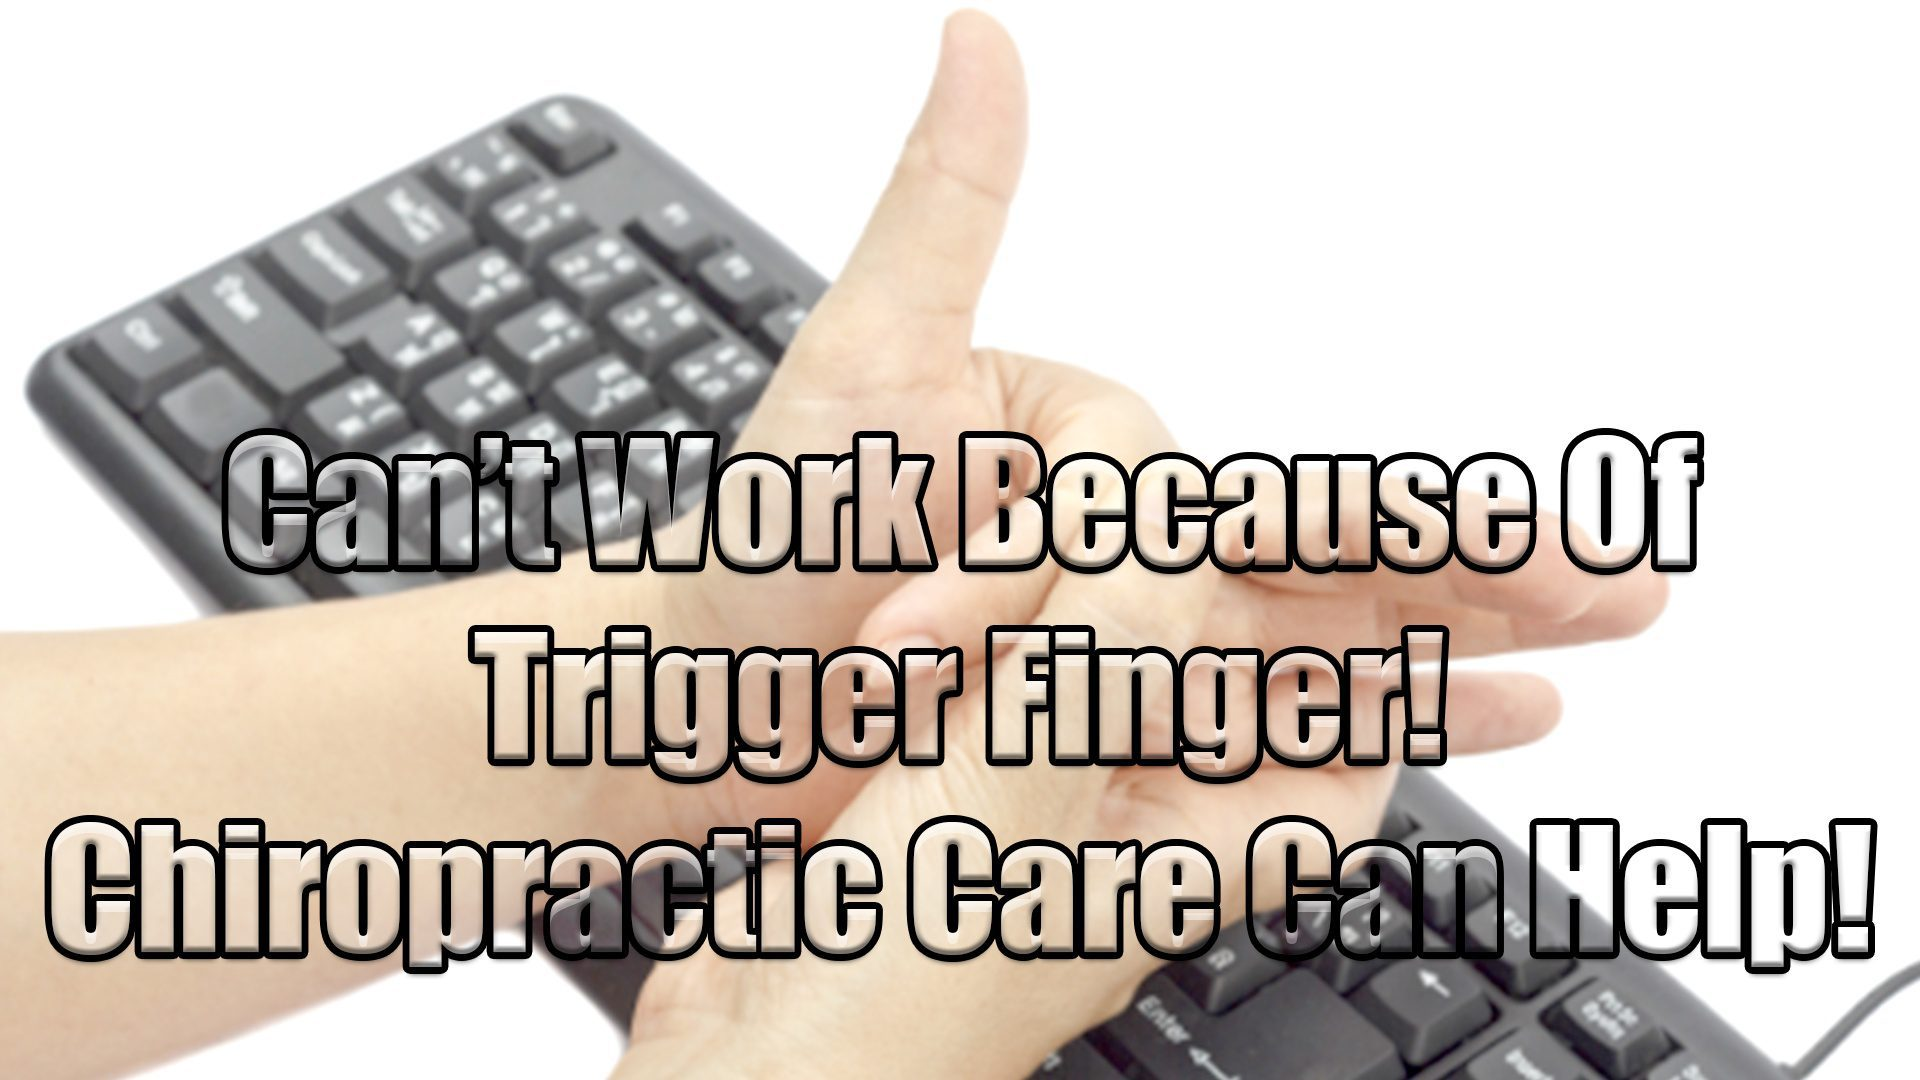 Trigger Finger Strain/Injury! Chiropractic Care Can Help!